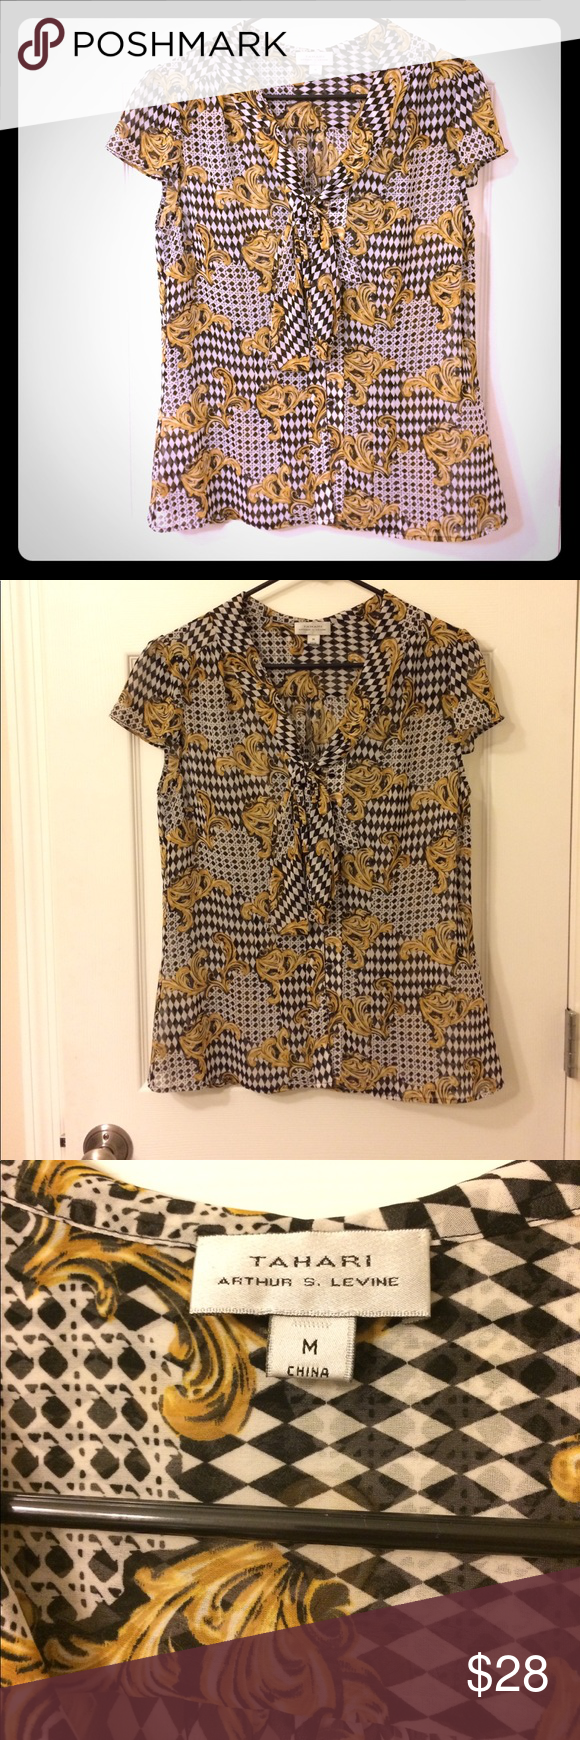 Tahari blouse Brand is sold at Lord & Taylor. Excellent condition. Too big for me and just hangs in my closet. Unusual color palette of black, white and mustard adds a bit of unique edge to this blouse. Excellent for work! Sheer. Price is firm; I don't accept offers. No trades. Bundle and save! Lord & Taylor Tops Blouses